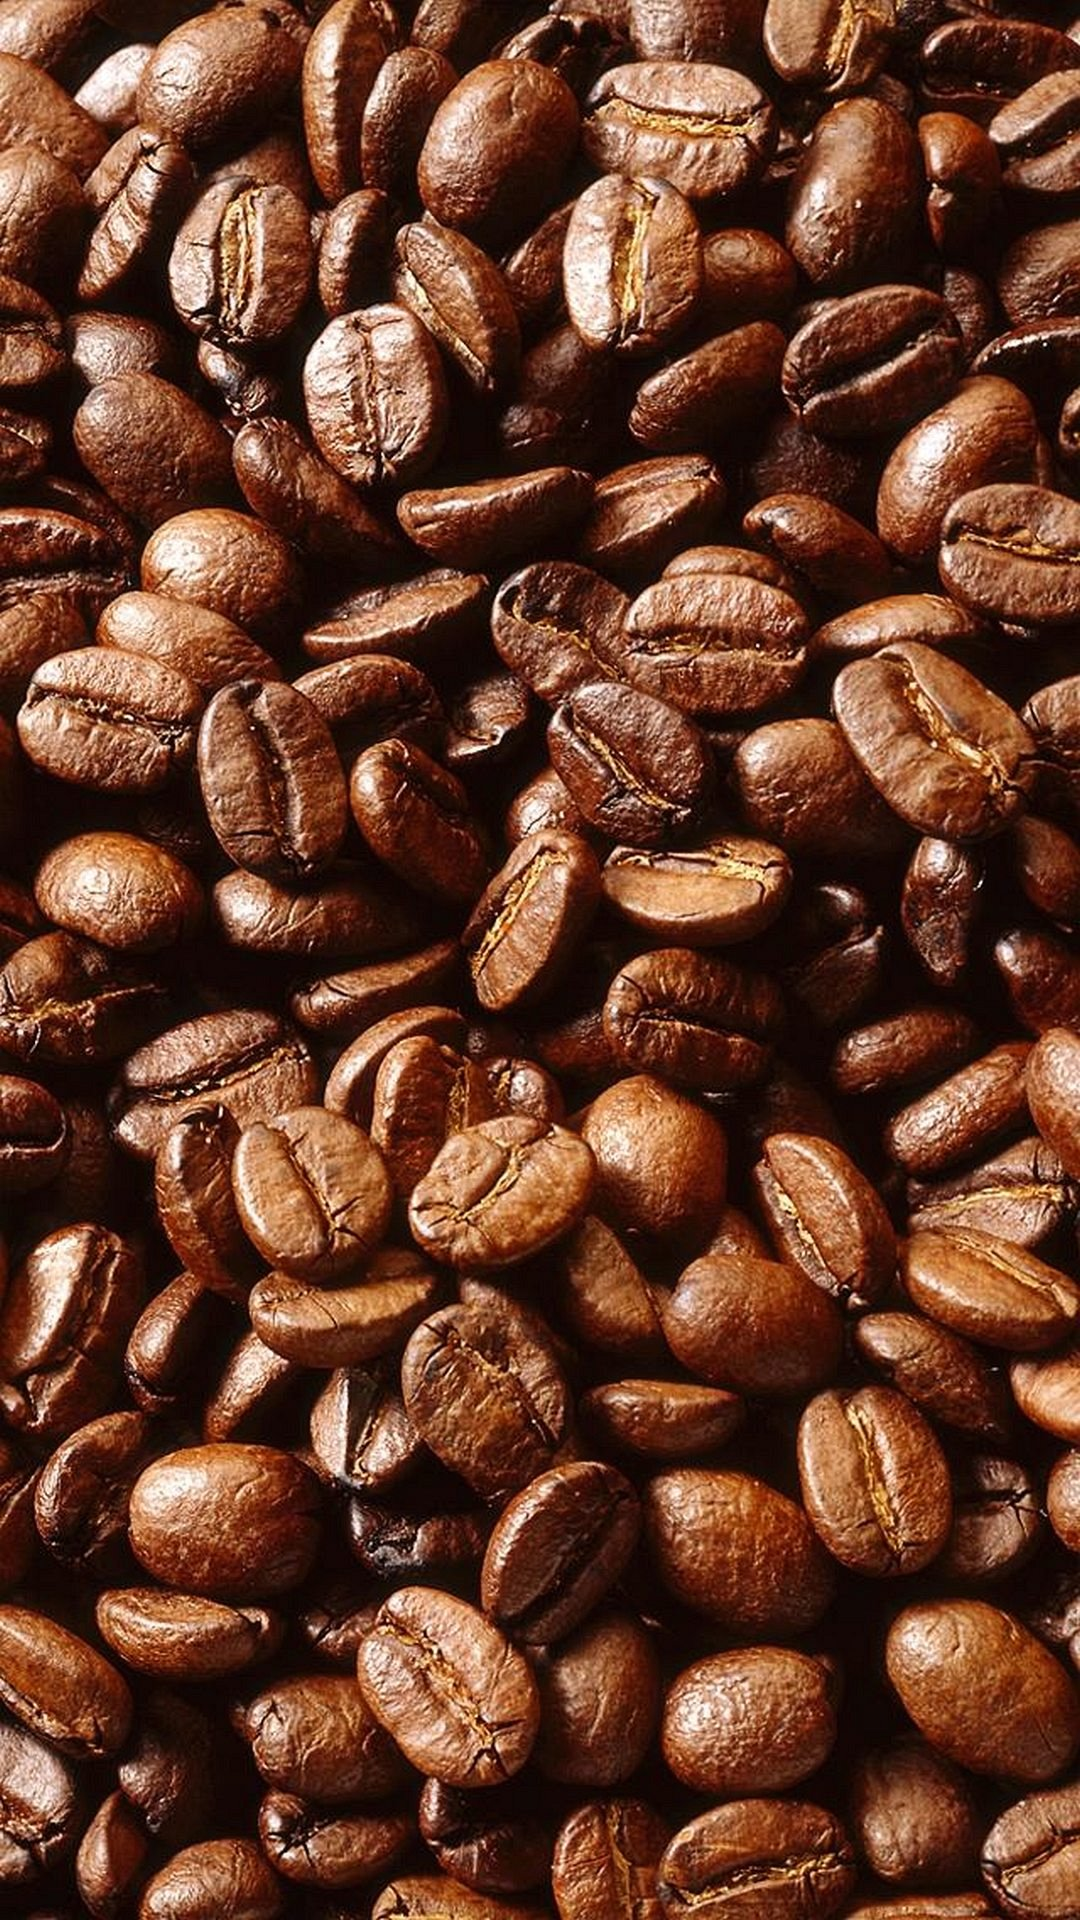 Coffee Beans Iphone Wallpaper